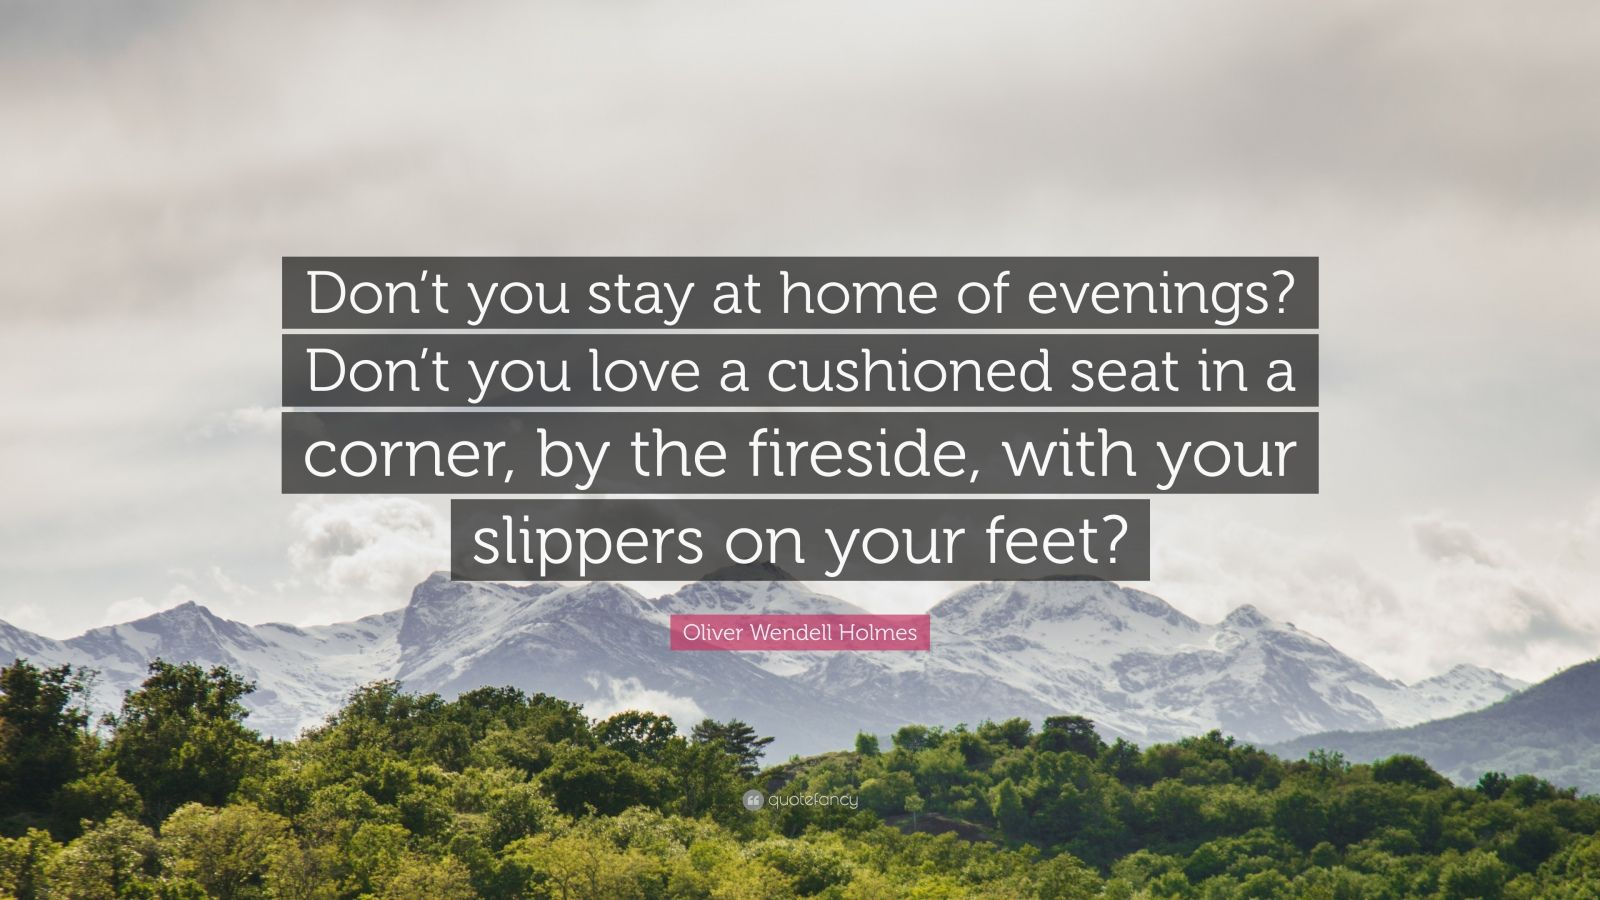 """Oliver Wendell Holmes Quote: """"Don't you stay at home of evenings? Don't you love a cushioned seat in a corner, by the fireside, with your slippers on your feet?"""""""